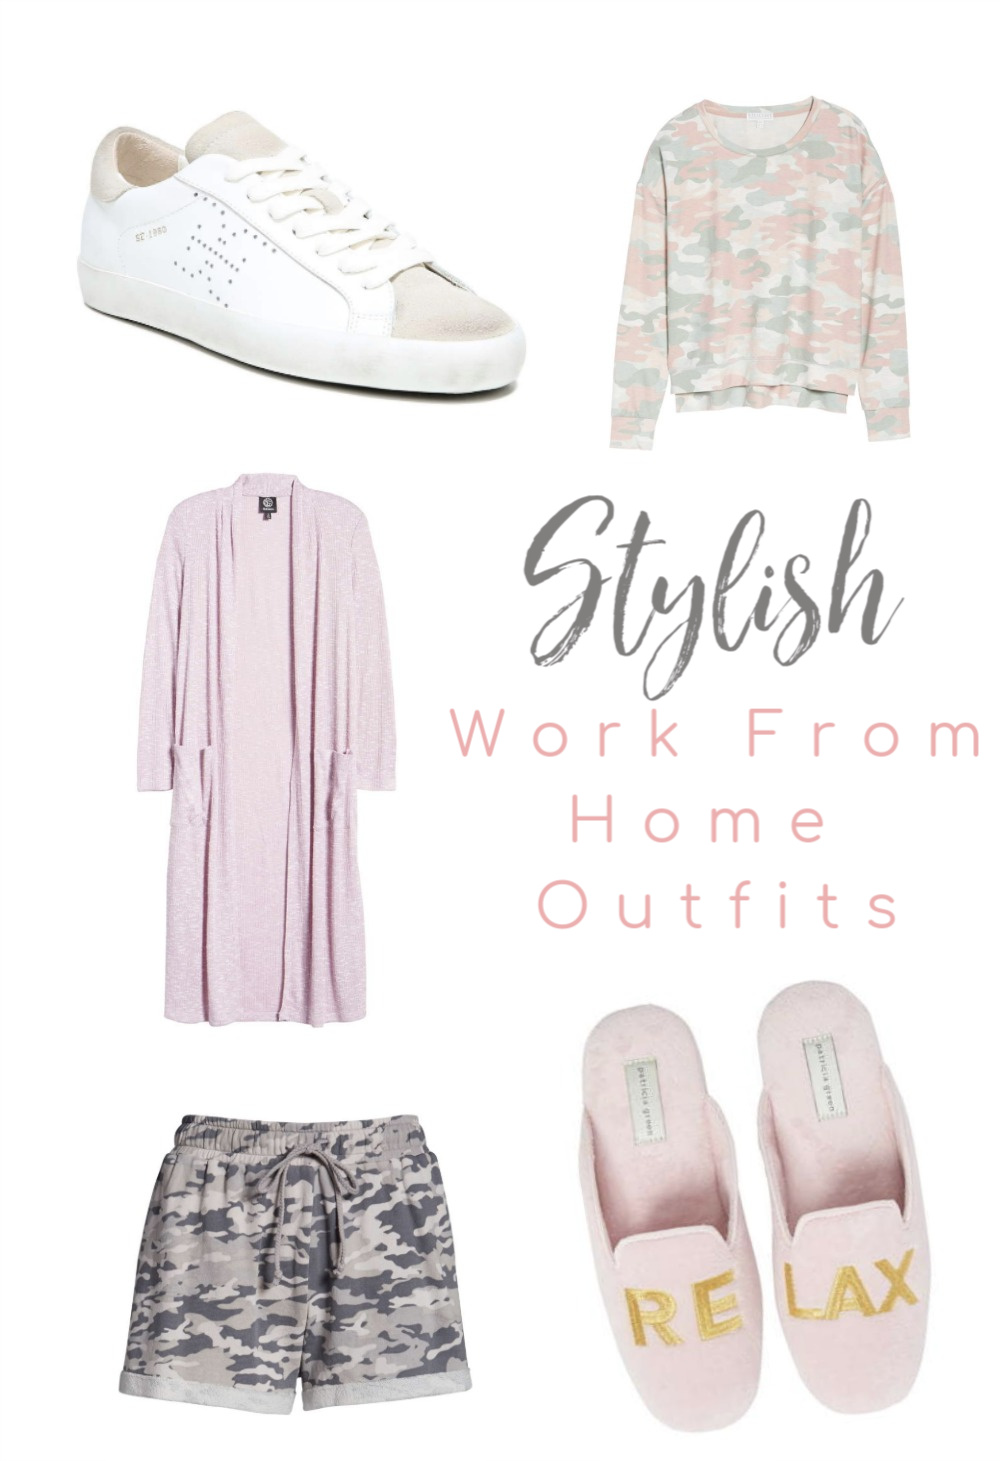 Stylish Work From Home Outfits with Nordstrom